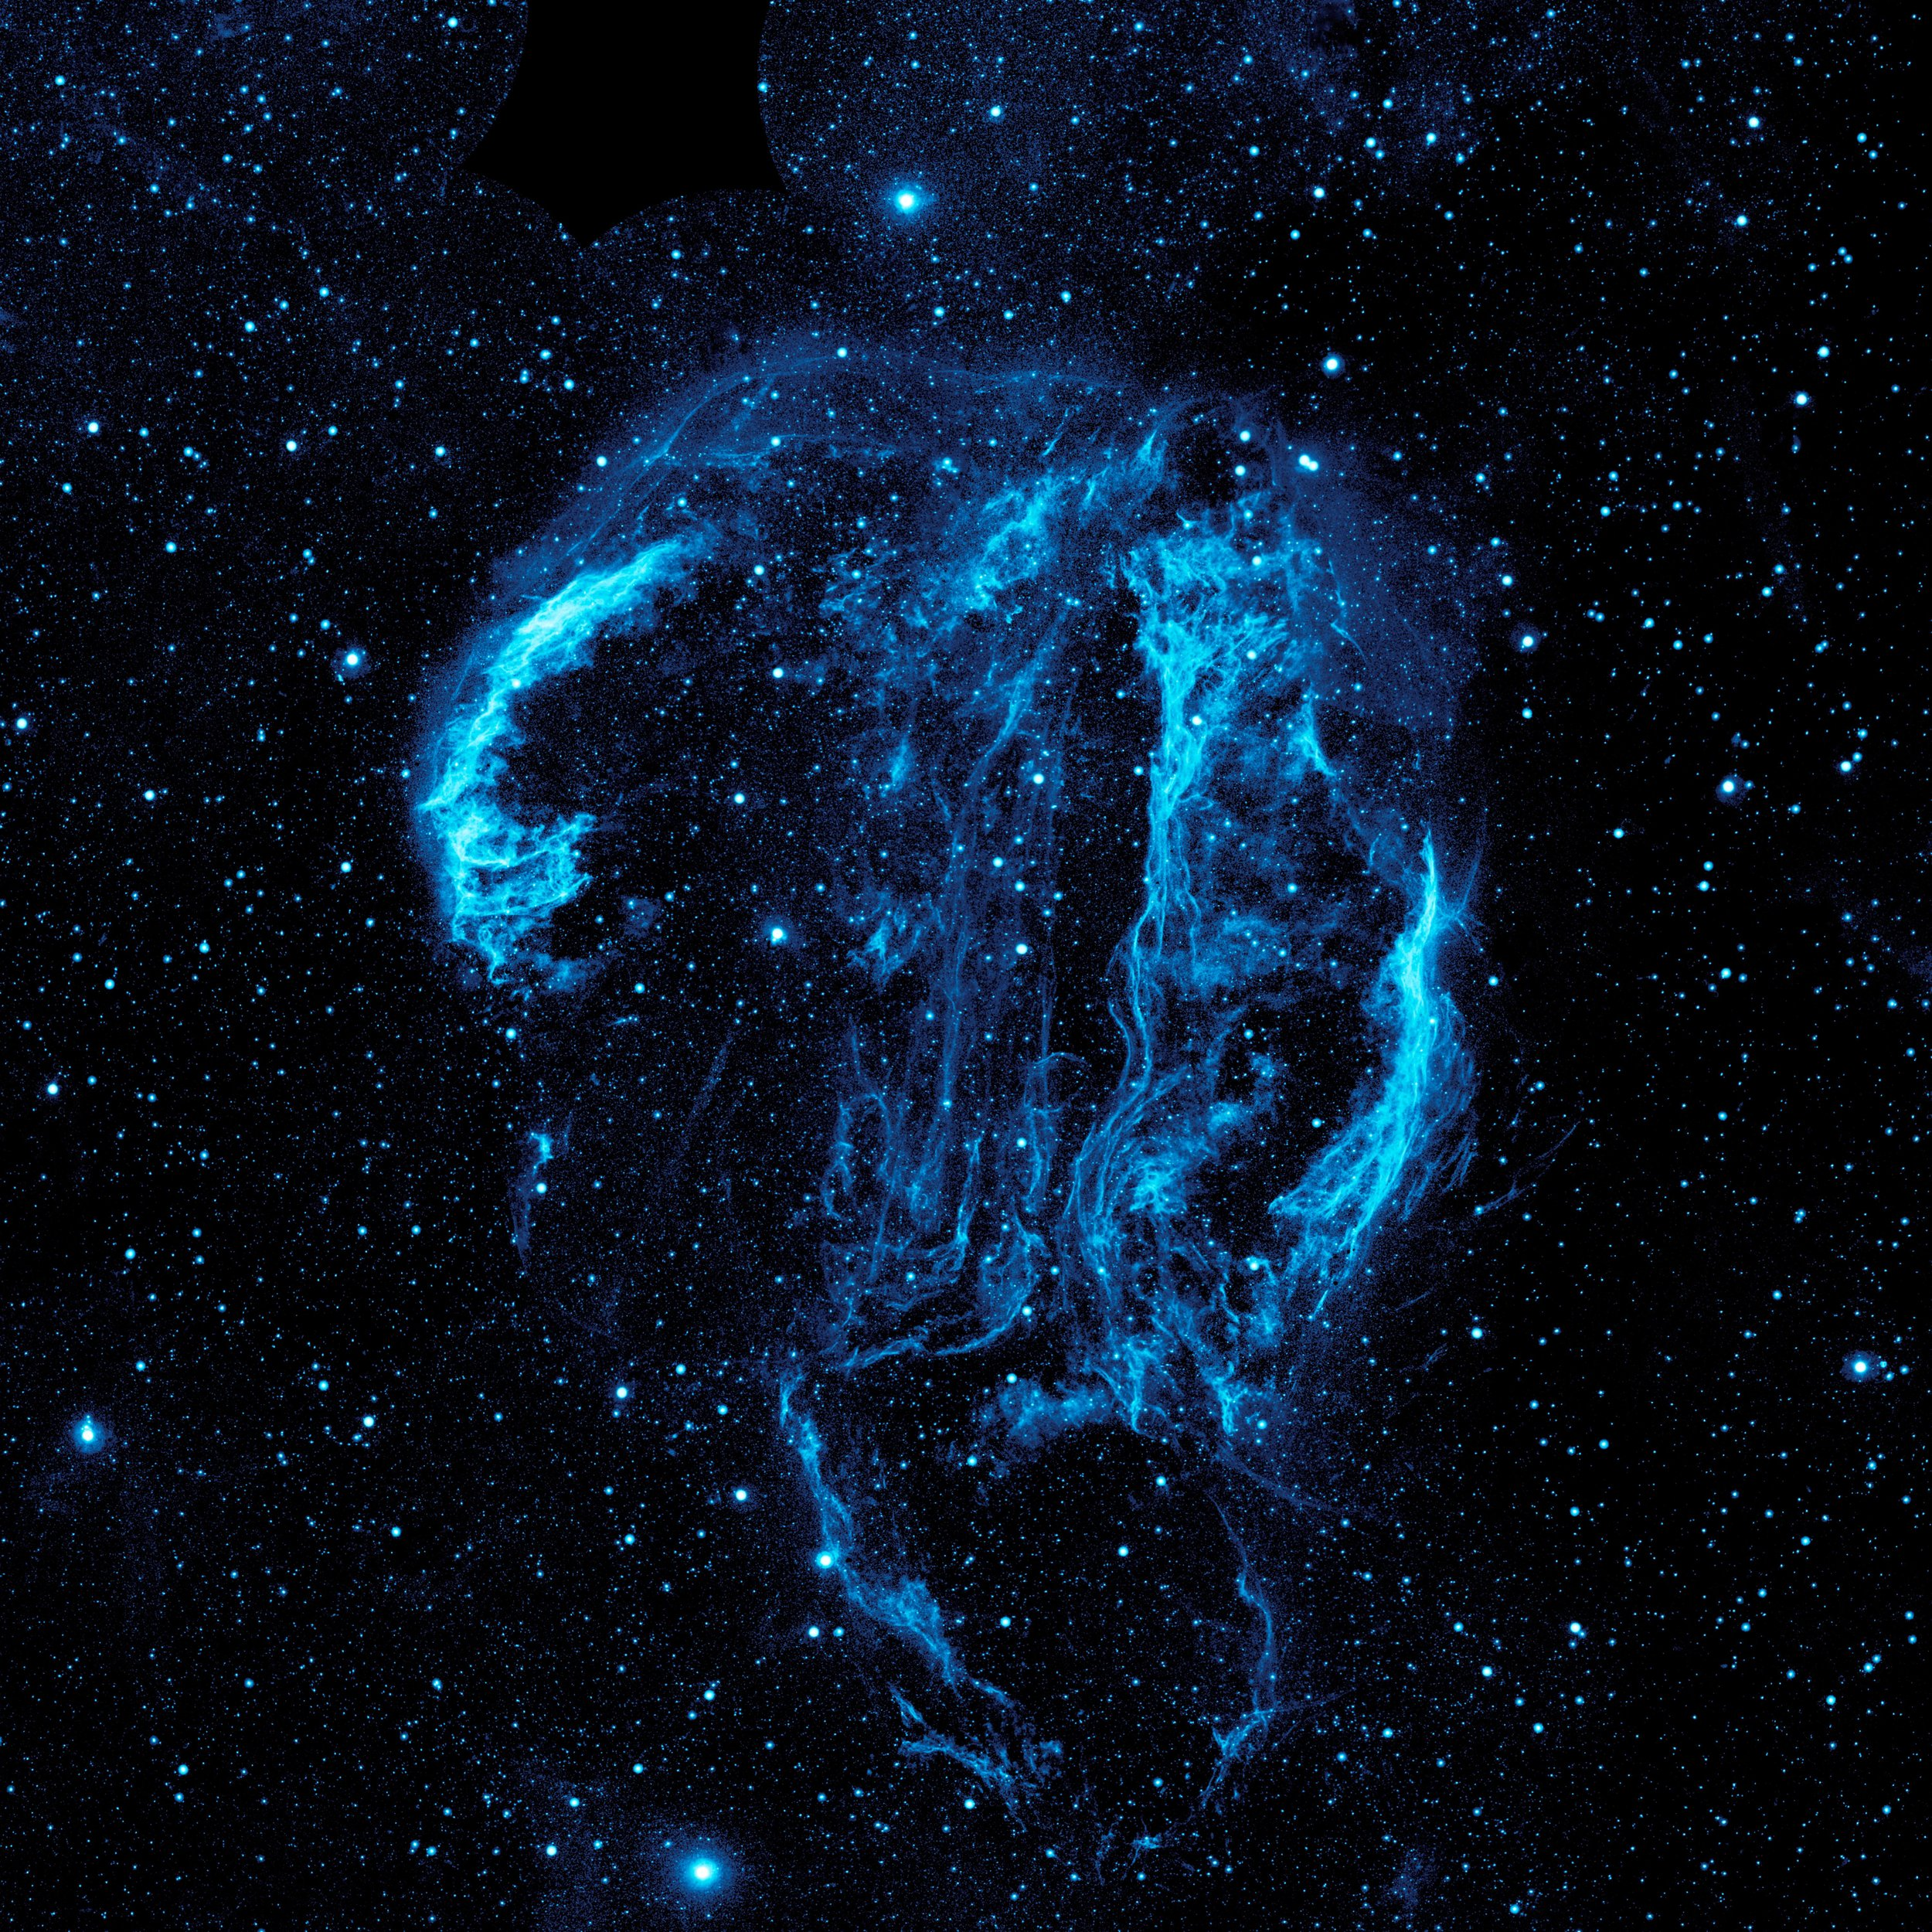 Wispy tendrils of hot dust and gas glow brightly in this ultraviolet image of the Cygnus Loop Nebula, taken by NASA's Galaxy Evolution Explorer. The nebula lies about 1,500 light-years away, and is a supernova remnant, left over from a massive stellar explosion that occurred 5,000-8,000 years ago. Image credit:  NASA/JPL-Caltech